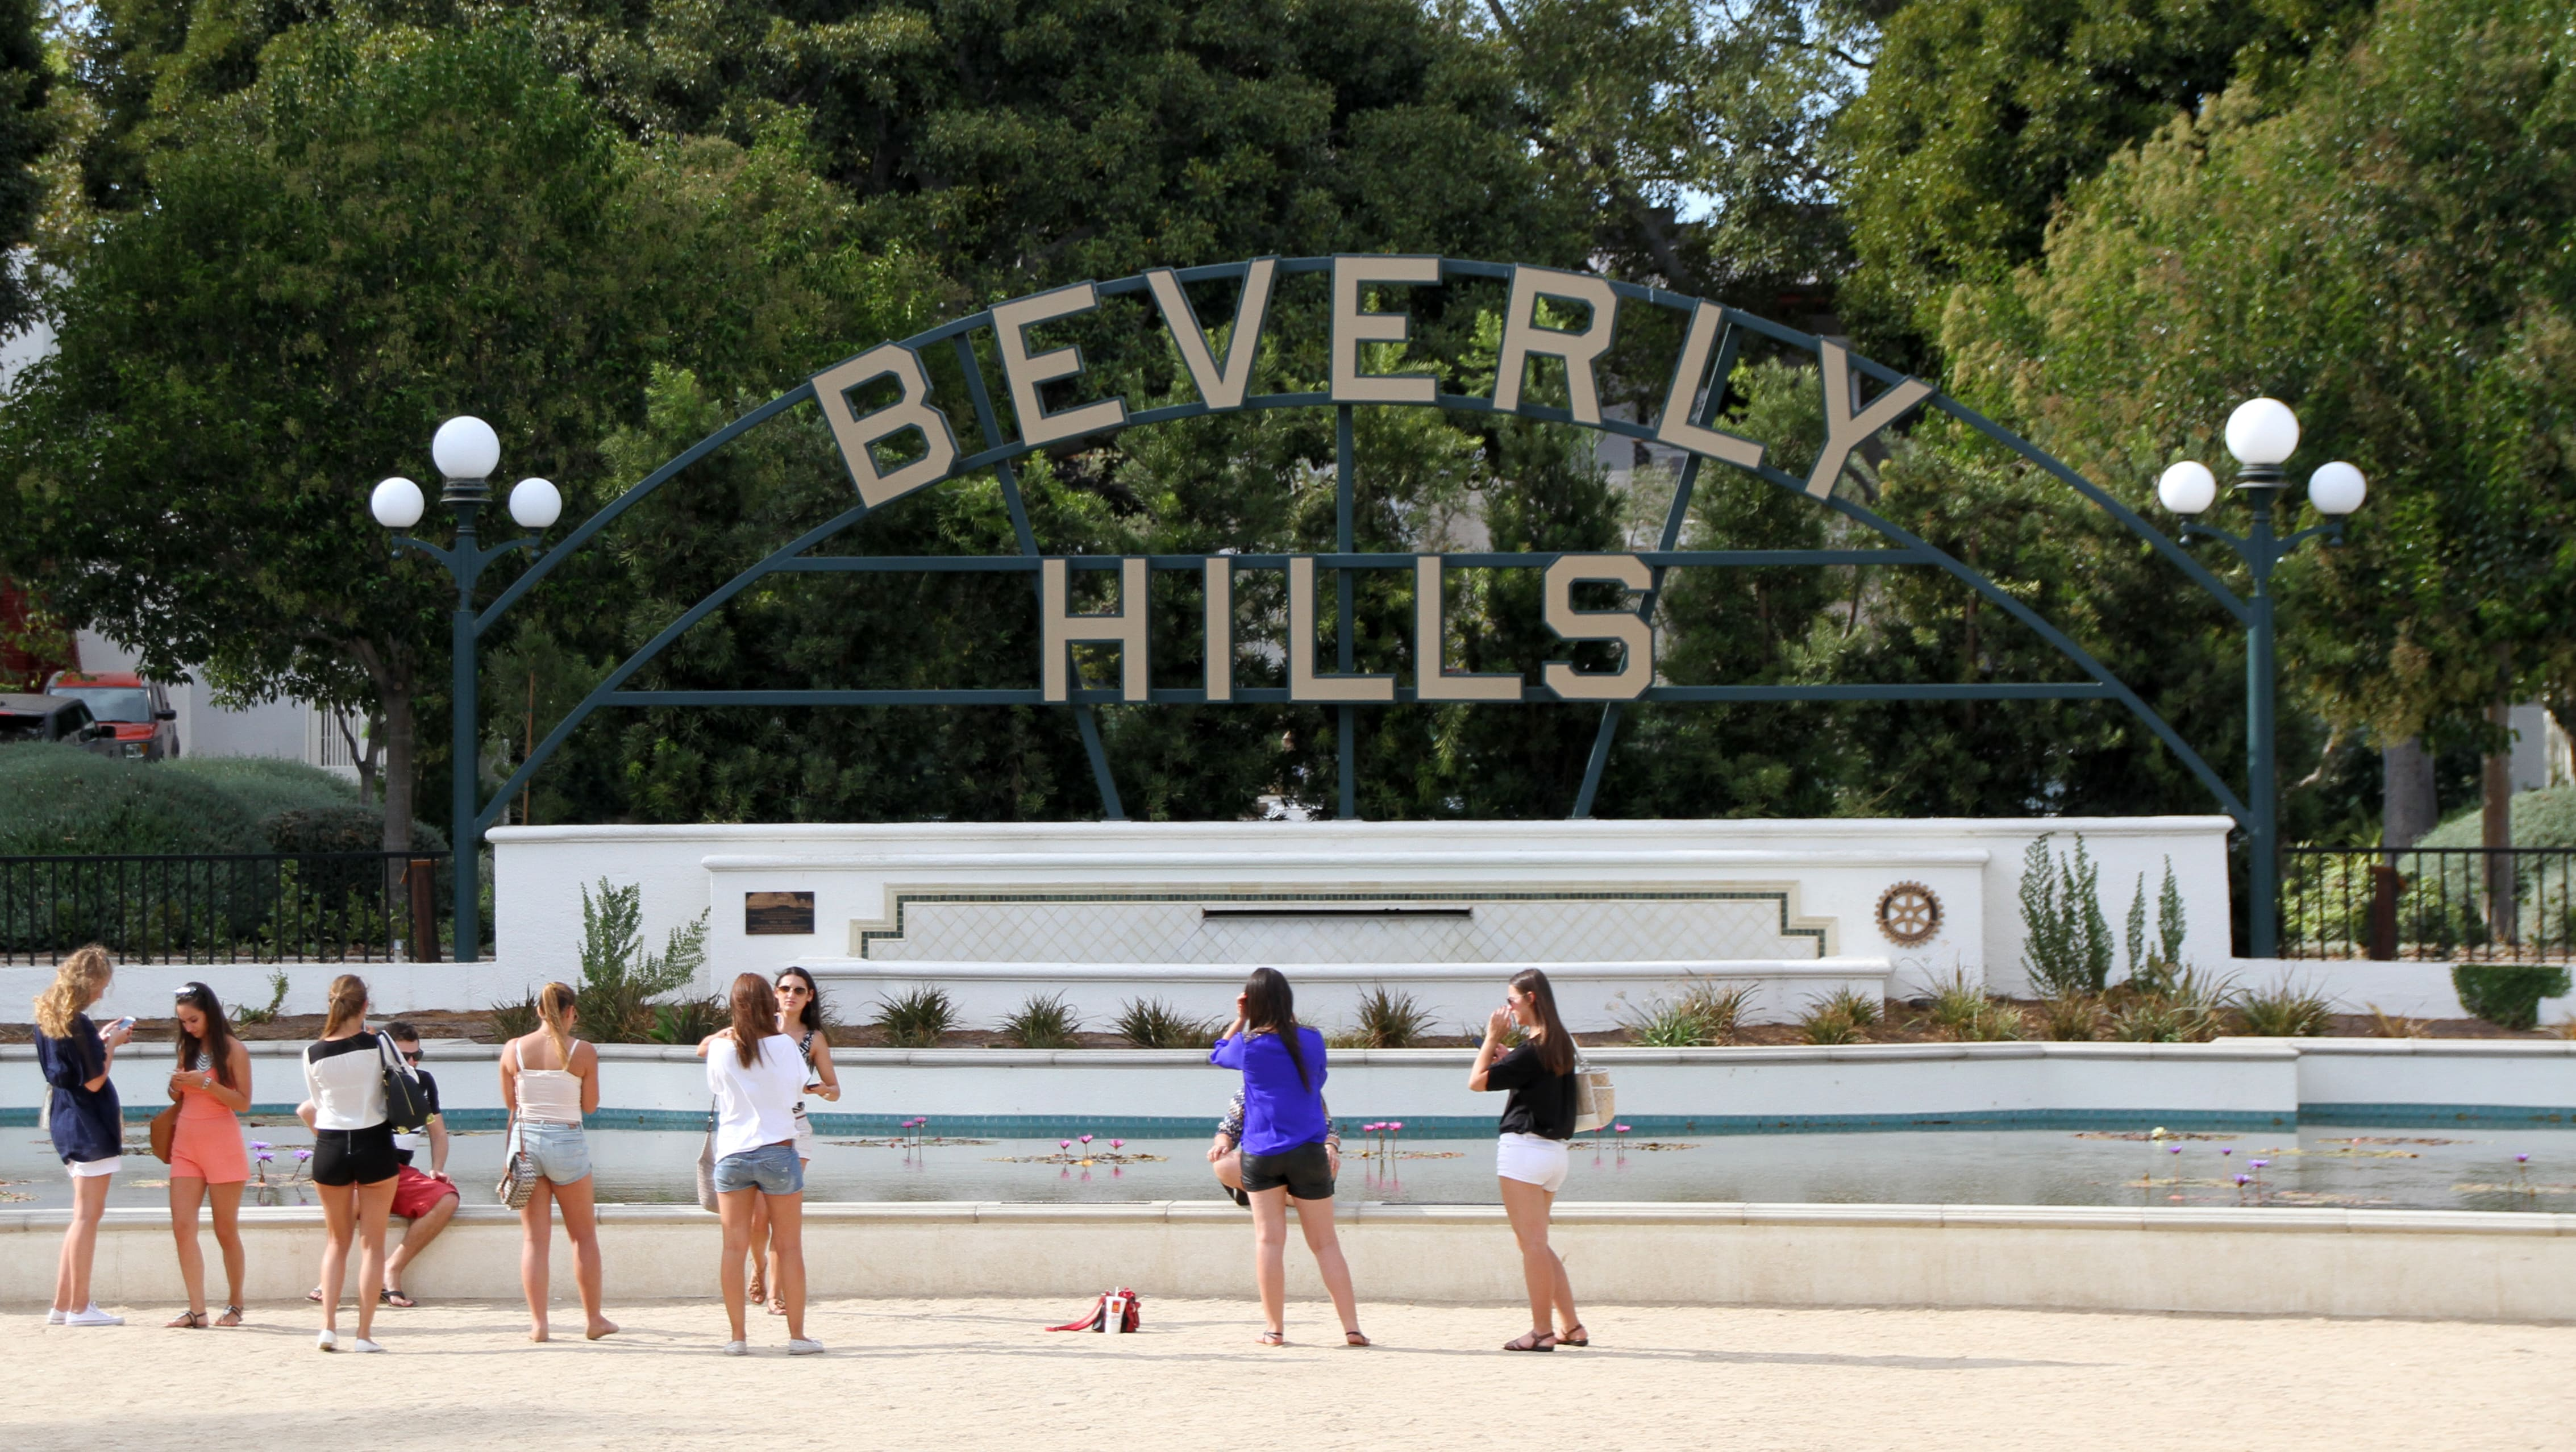 Is Los Angeles Safe? Yes but there are some neighborhoods you should avoid